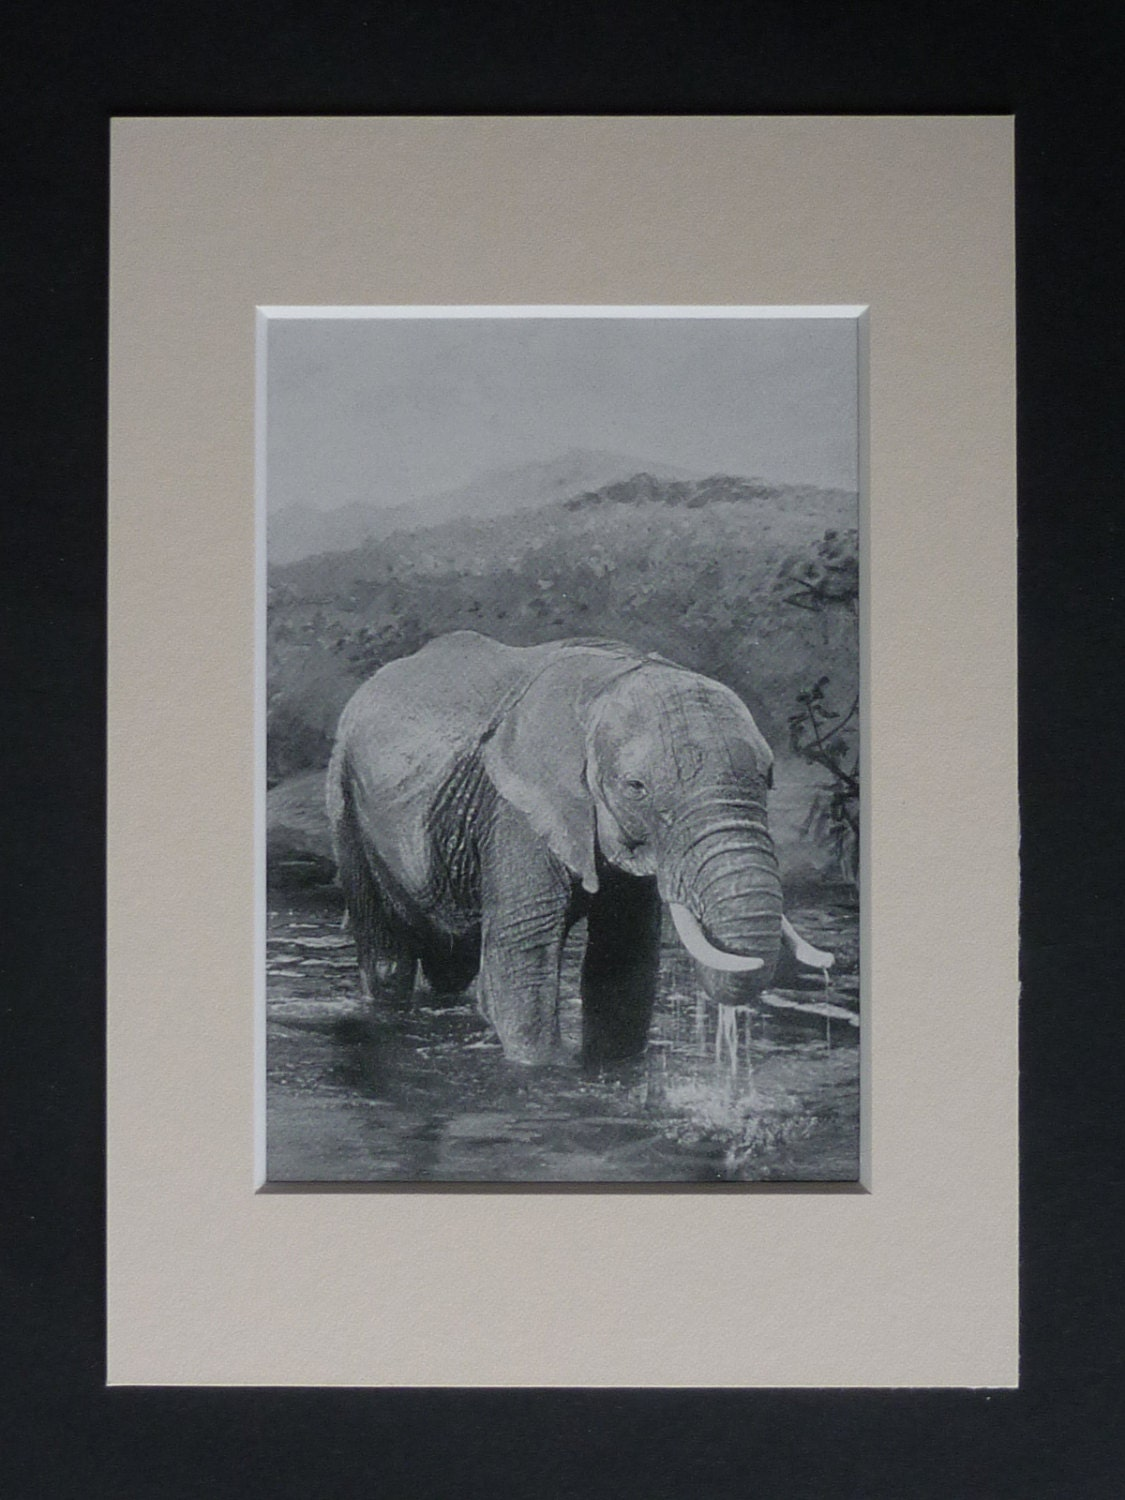 1901 Antique African Elephant Print Available Framed Nature Art Bathing Gift River Photography Decor Bathroom Picture Victorian Animal